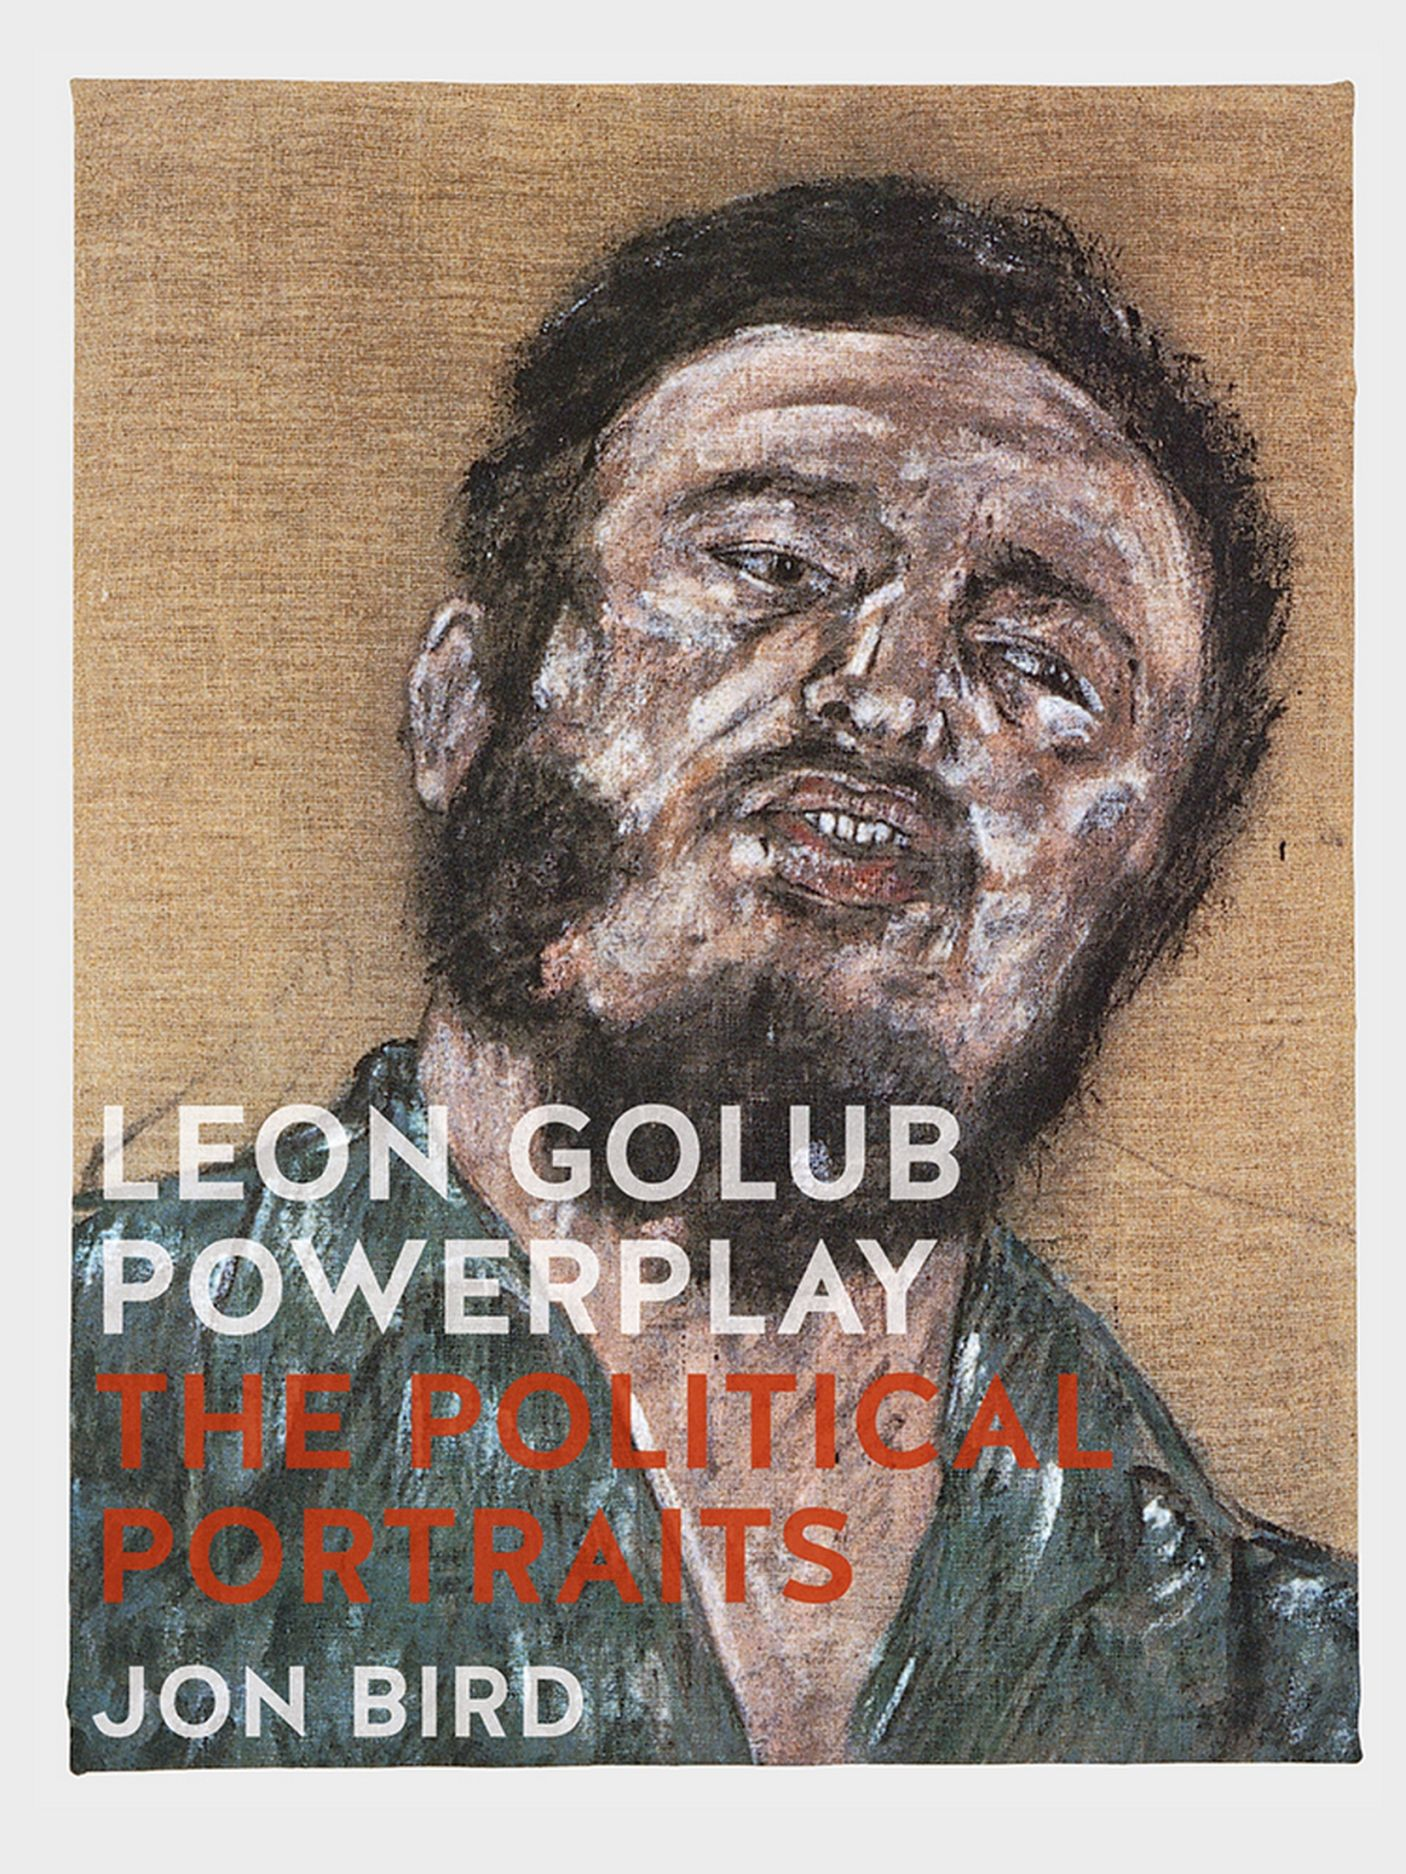 Leon Golub Powerplay: The Political Portraits